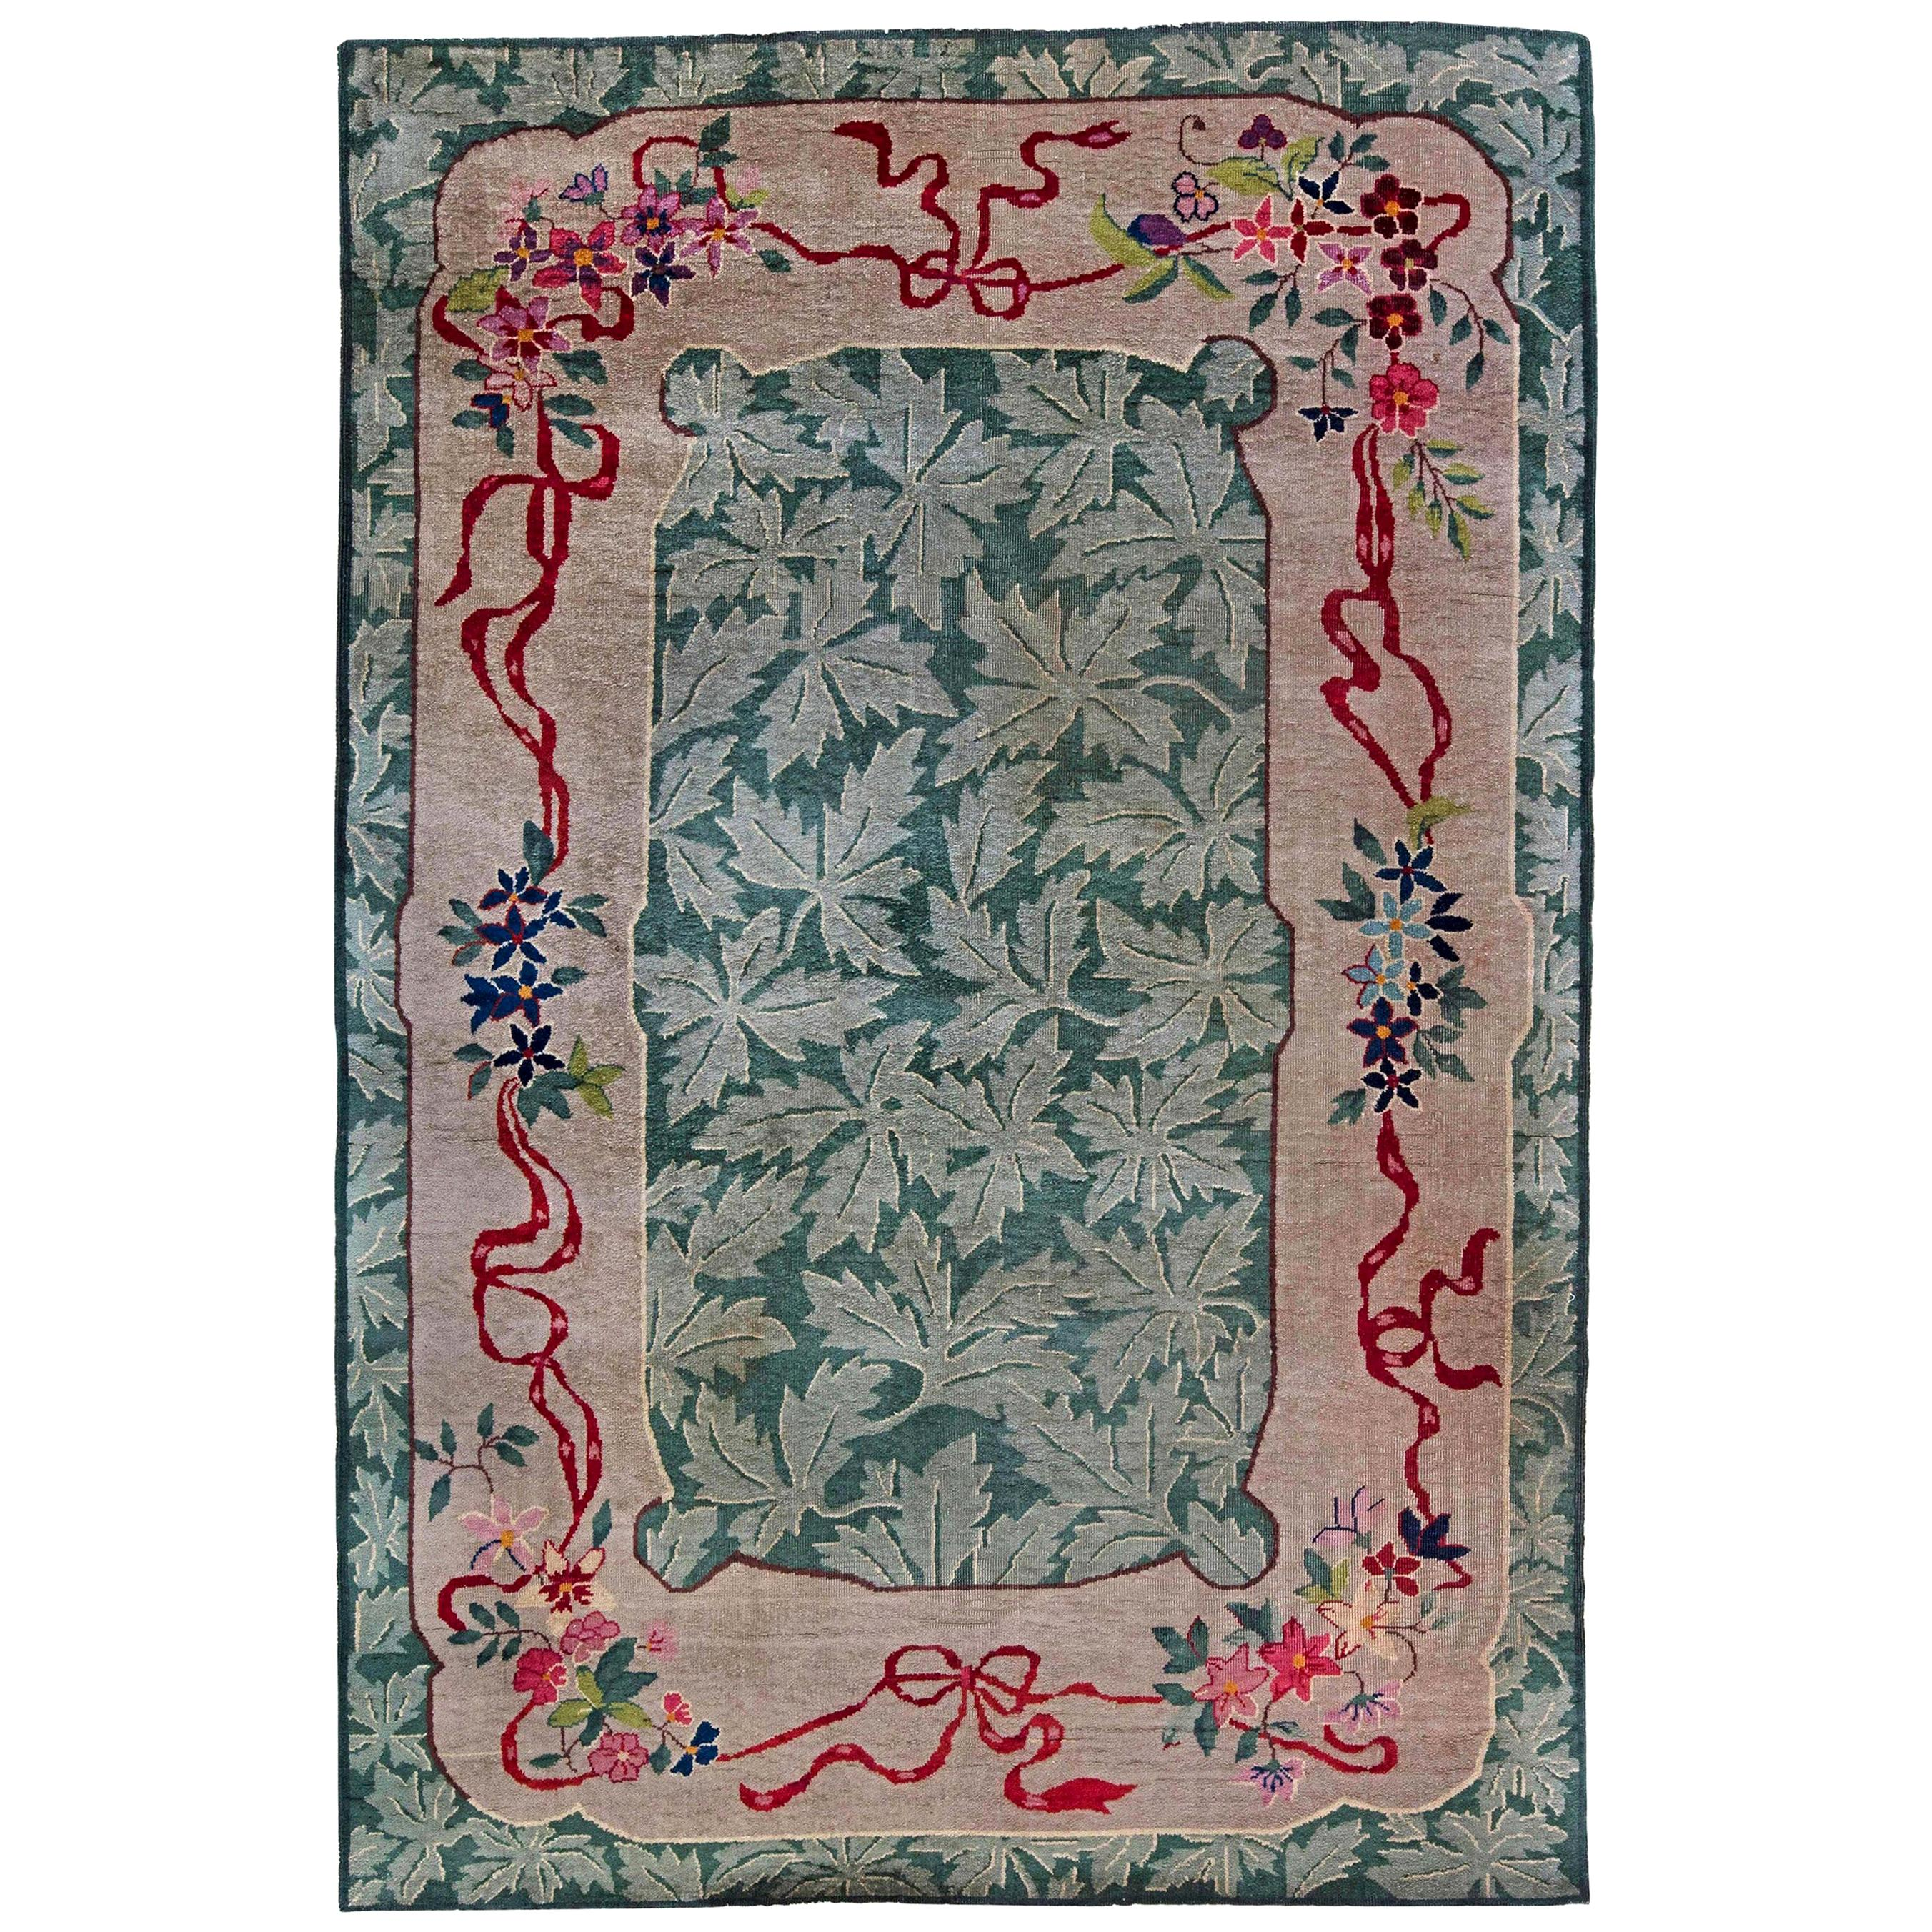 Mid-20th century Art Deco Chinese Green and Red Hand Knotted Wool Rug